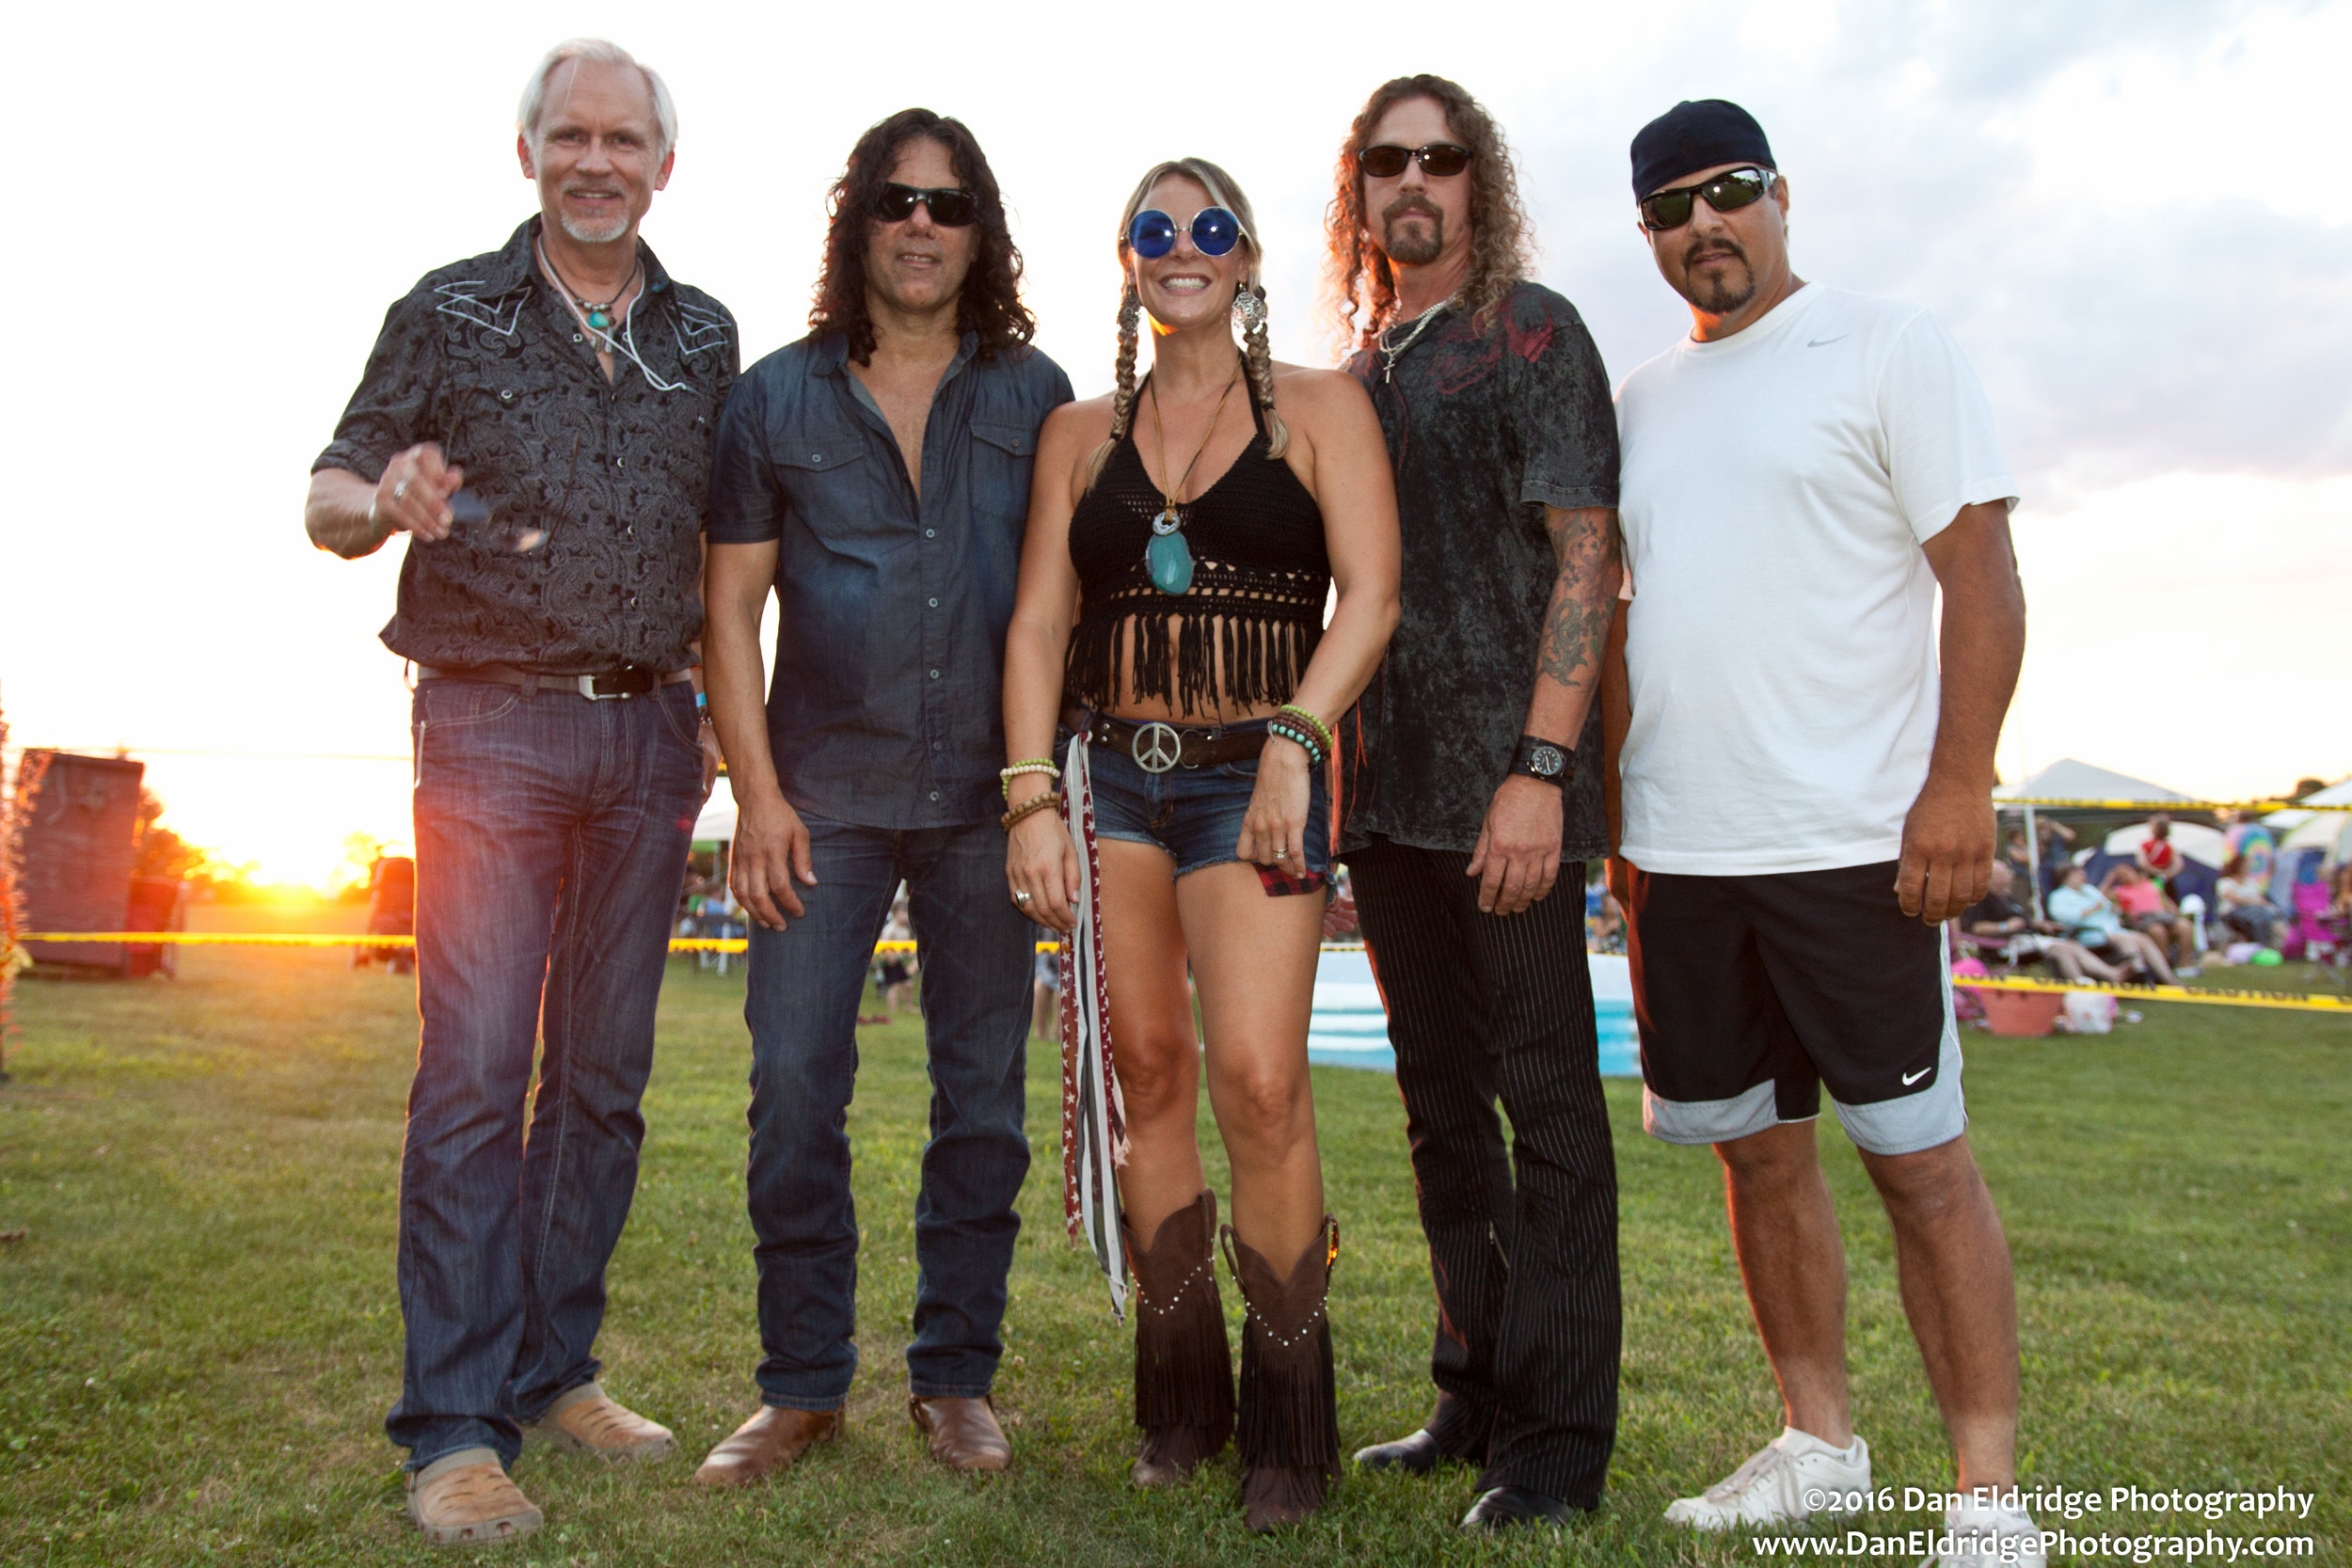 2016-07-23_Sourland Music Fest 2016_355_Full Rez.JPG